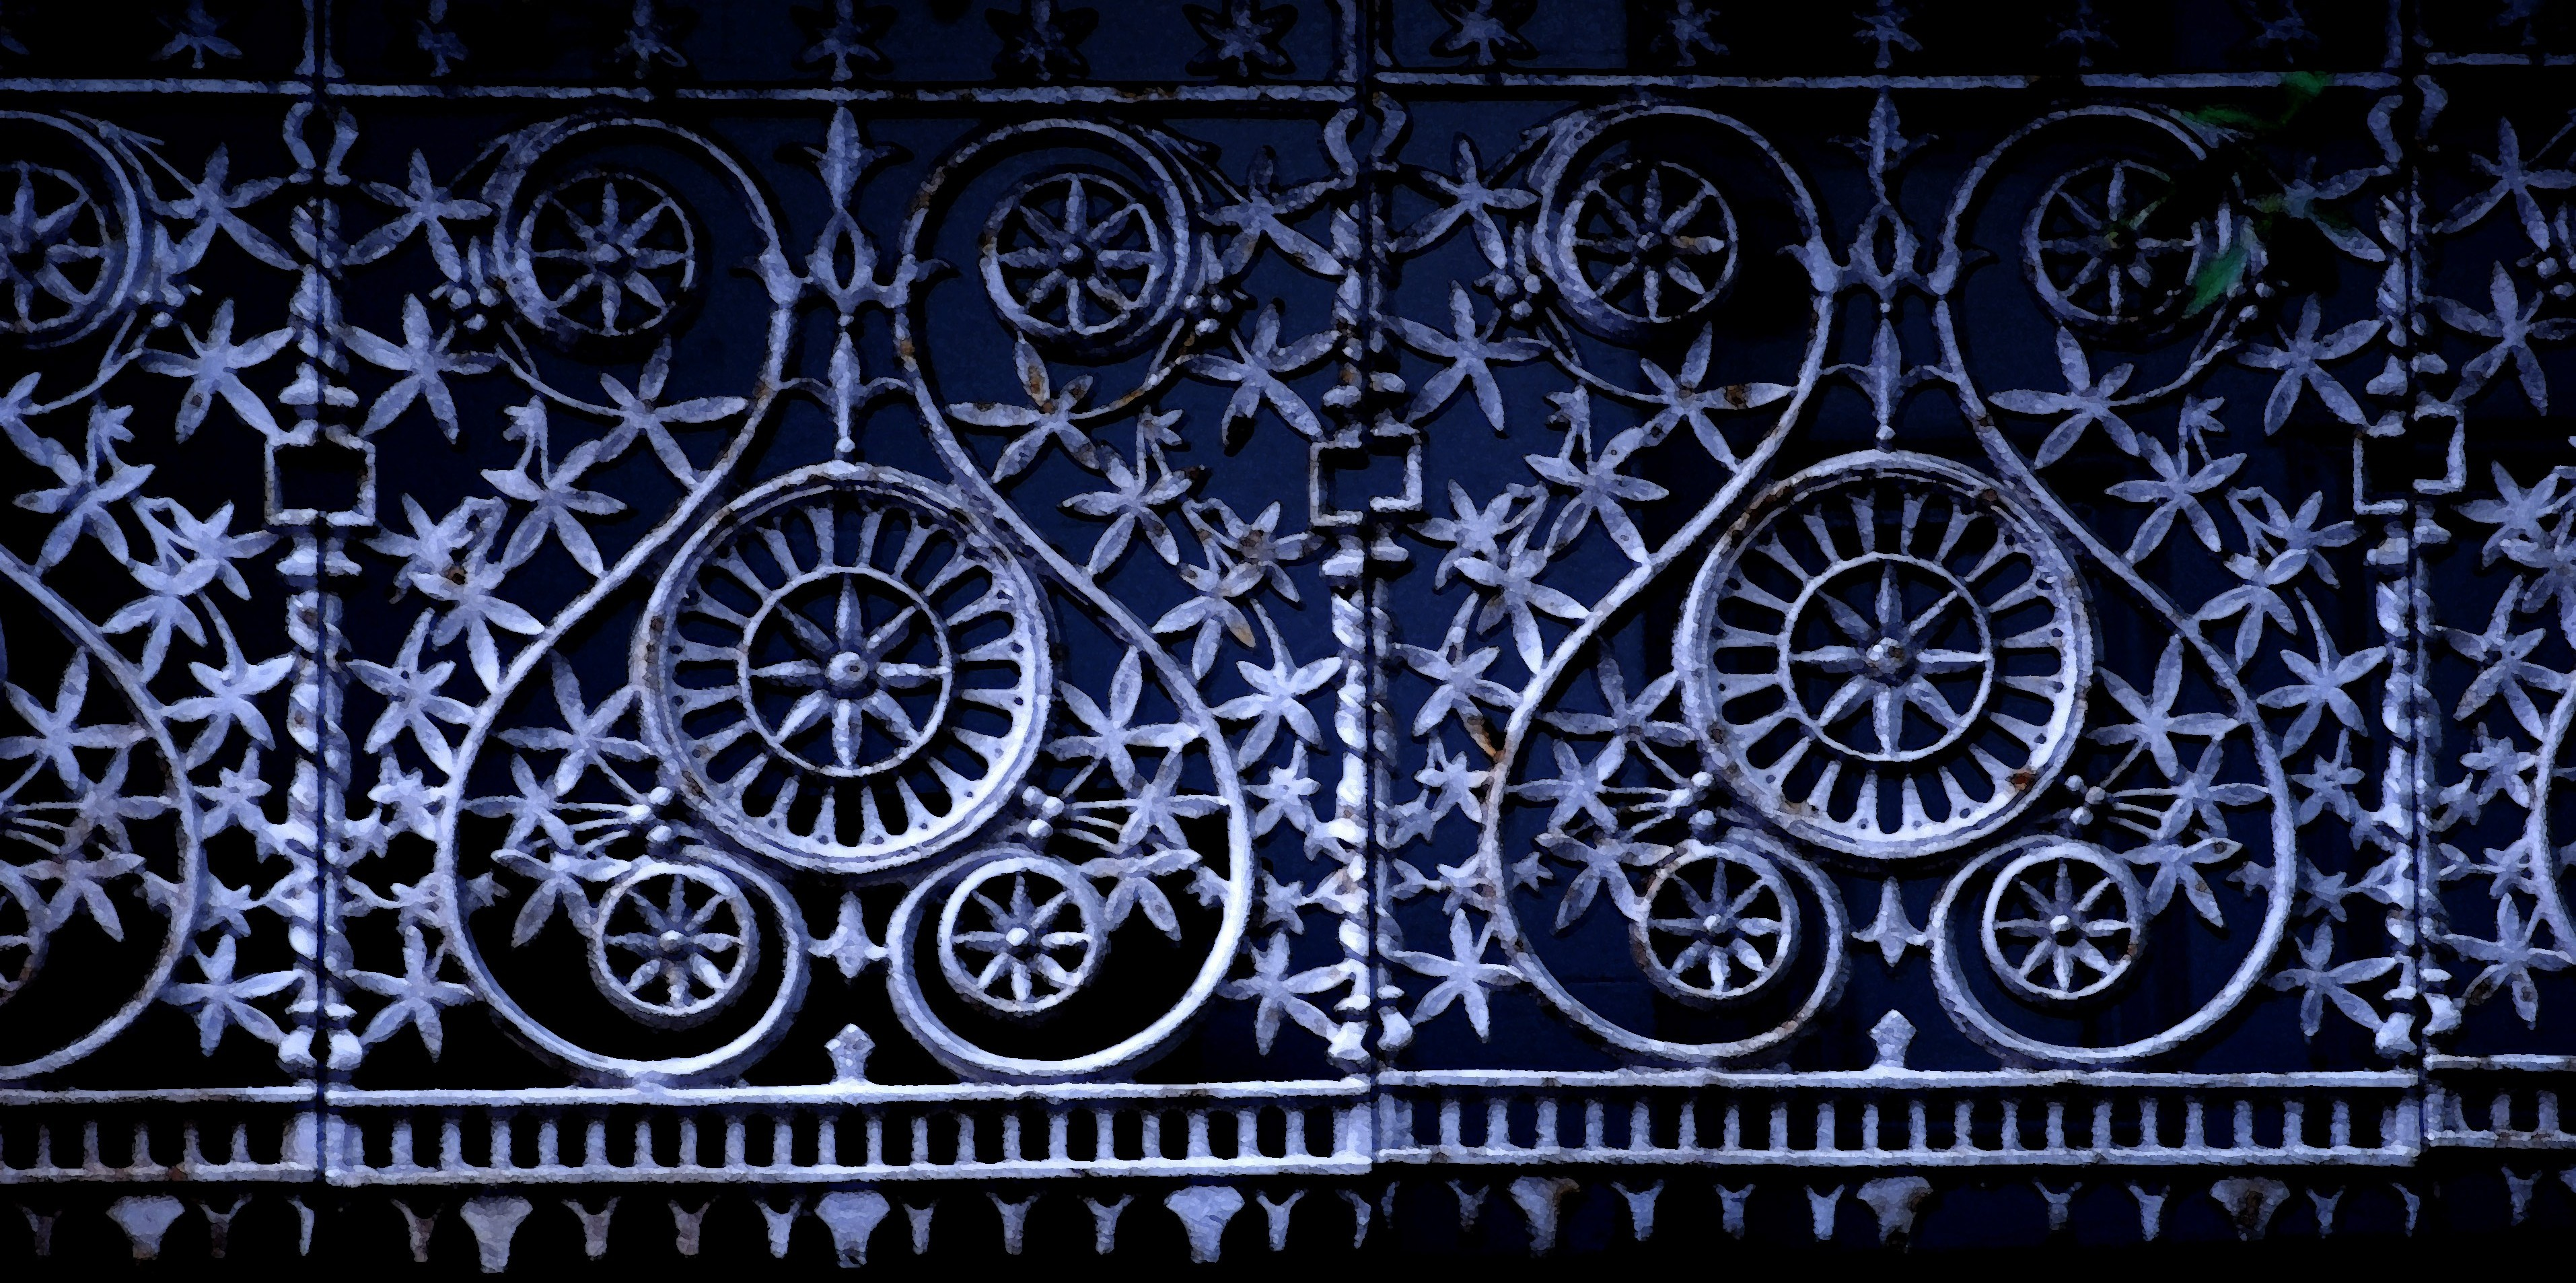 Gritty cast iron work free backgrounds and textures cr103 blue tinted high contrast cast iron fence panels baanklon Choice Image